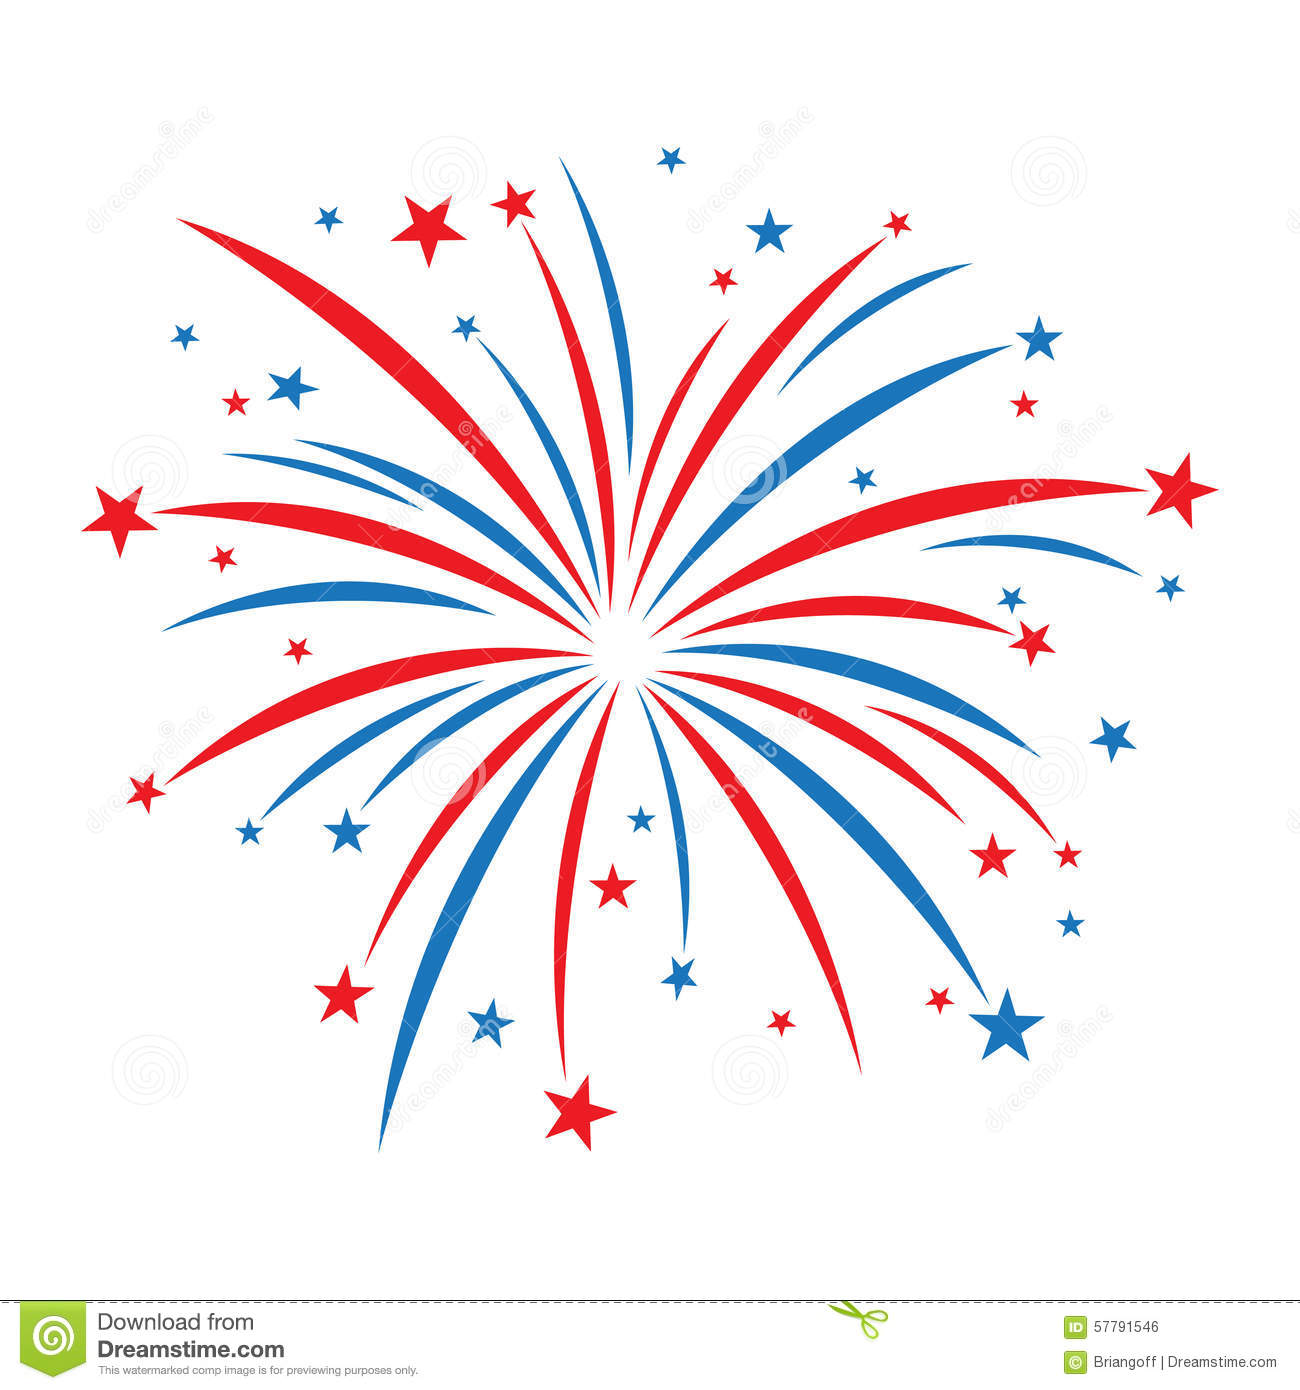 Fireworks Vector Icon stock vector. Illustration of star ...Fireworks Icon Image